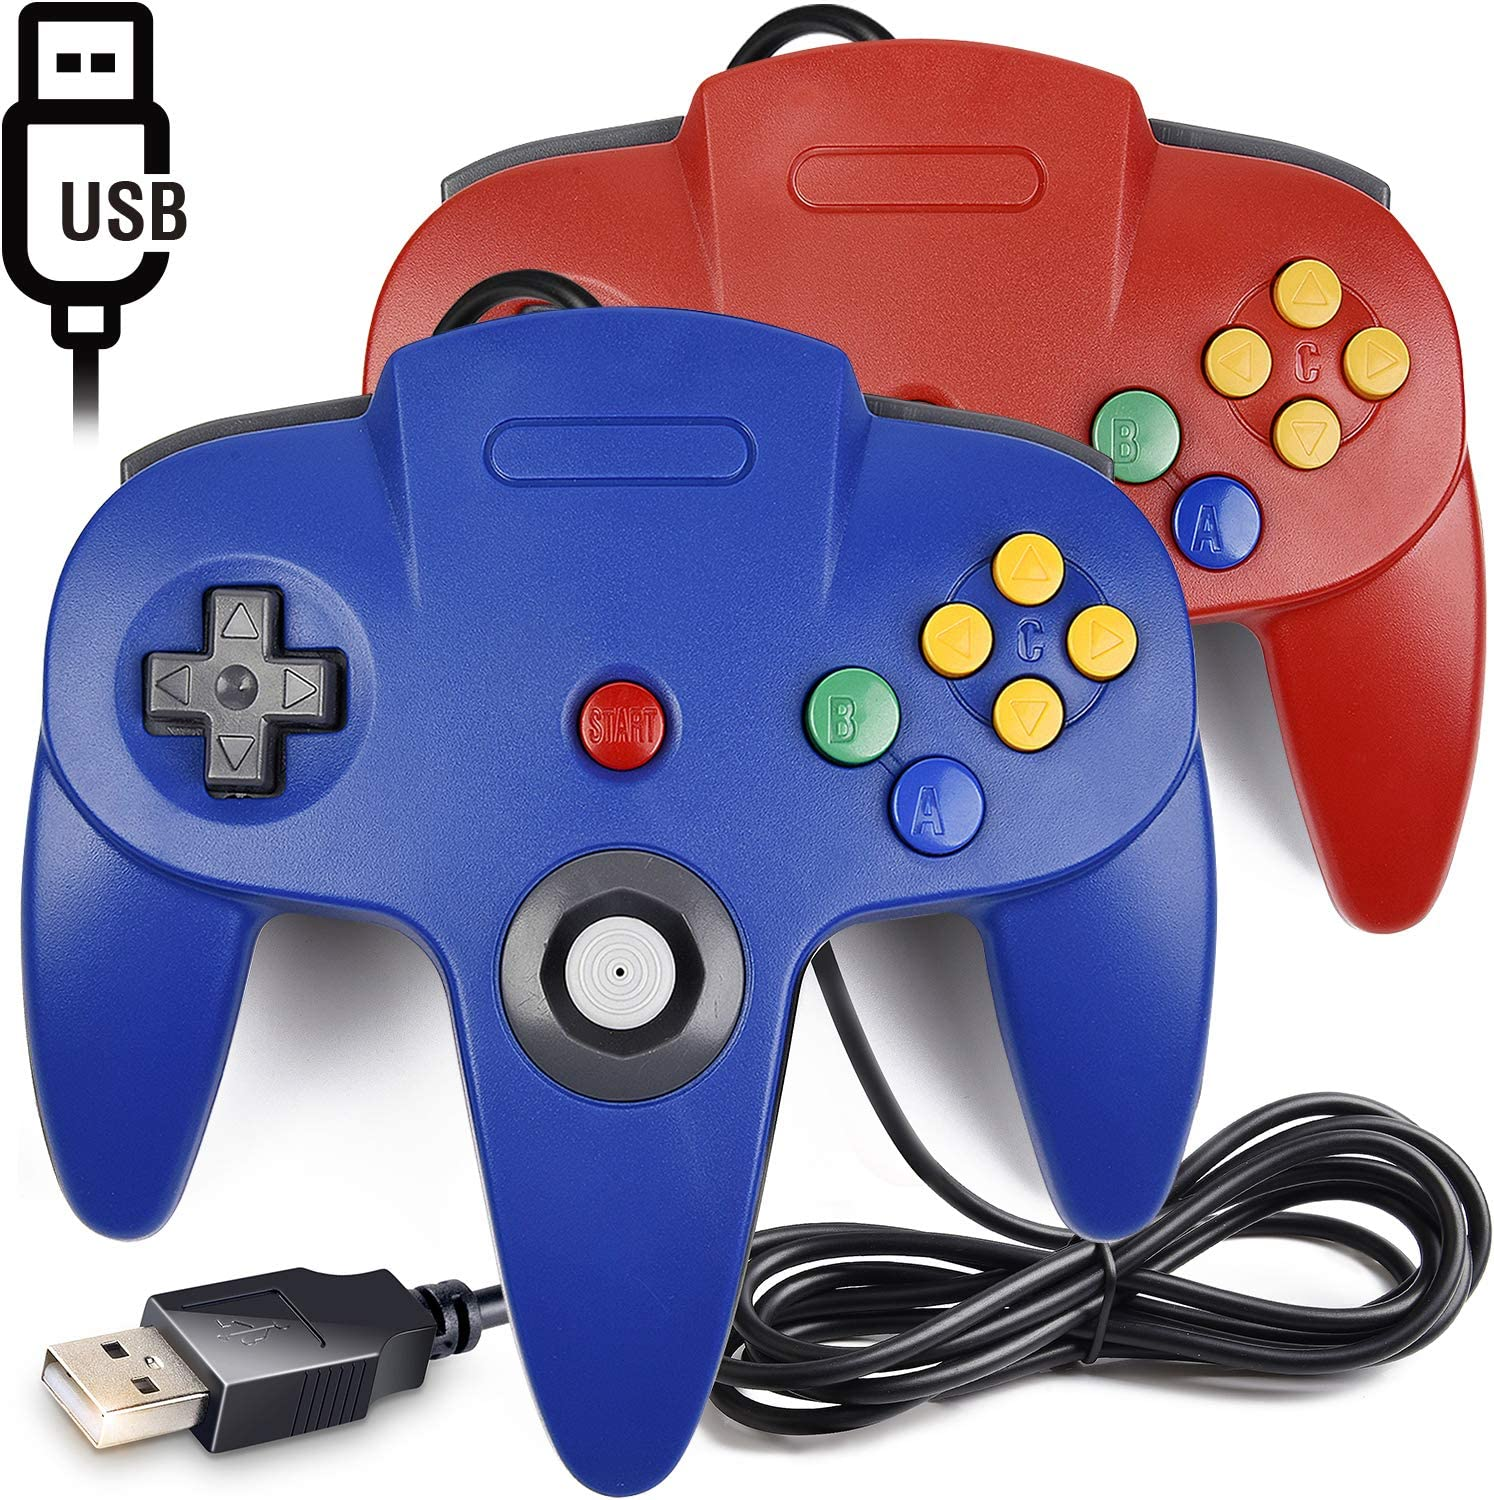 [USB Version] 2 Pack Classic N64 Controller, iNNEXT N64 Wired USB PC Game pad Joystick, N64 Bit USB Wired Game Stick for Windows PC MAC Linux Raspberry Pi 3 Genesis Higan (Red/Blue)